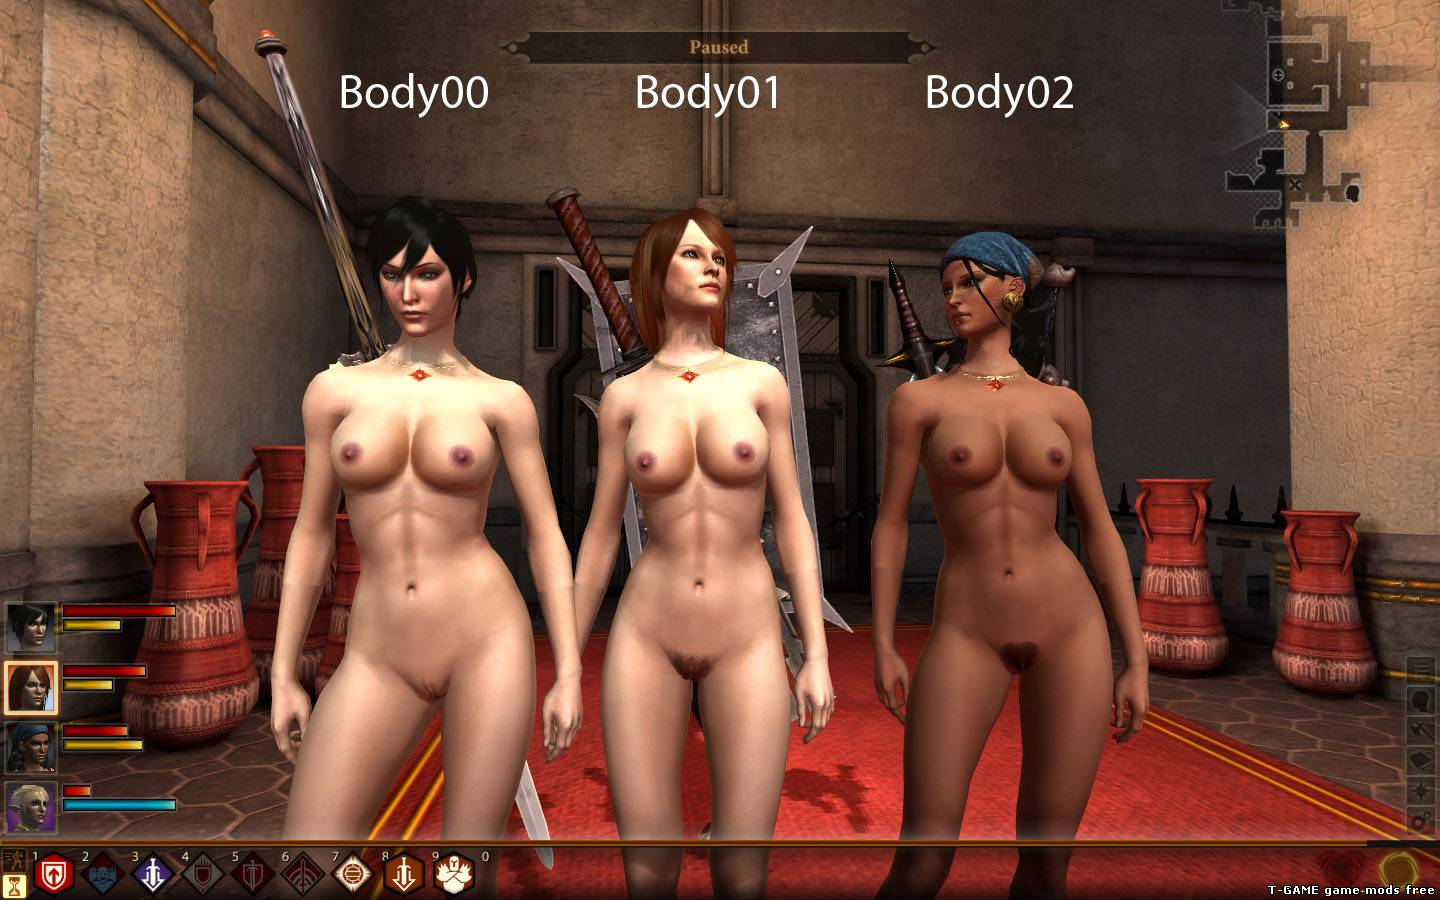 Gta4 nude boobs mod hentia gallery